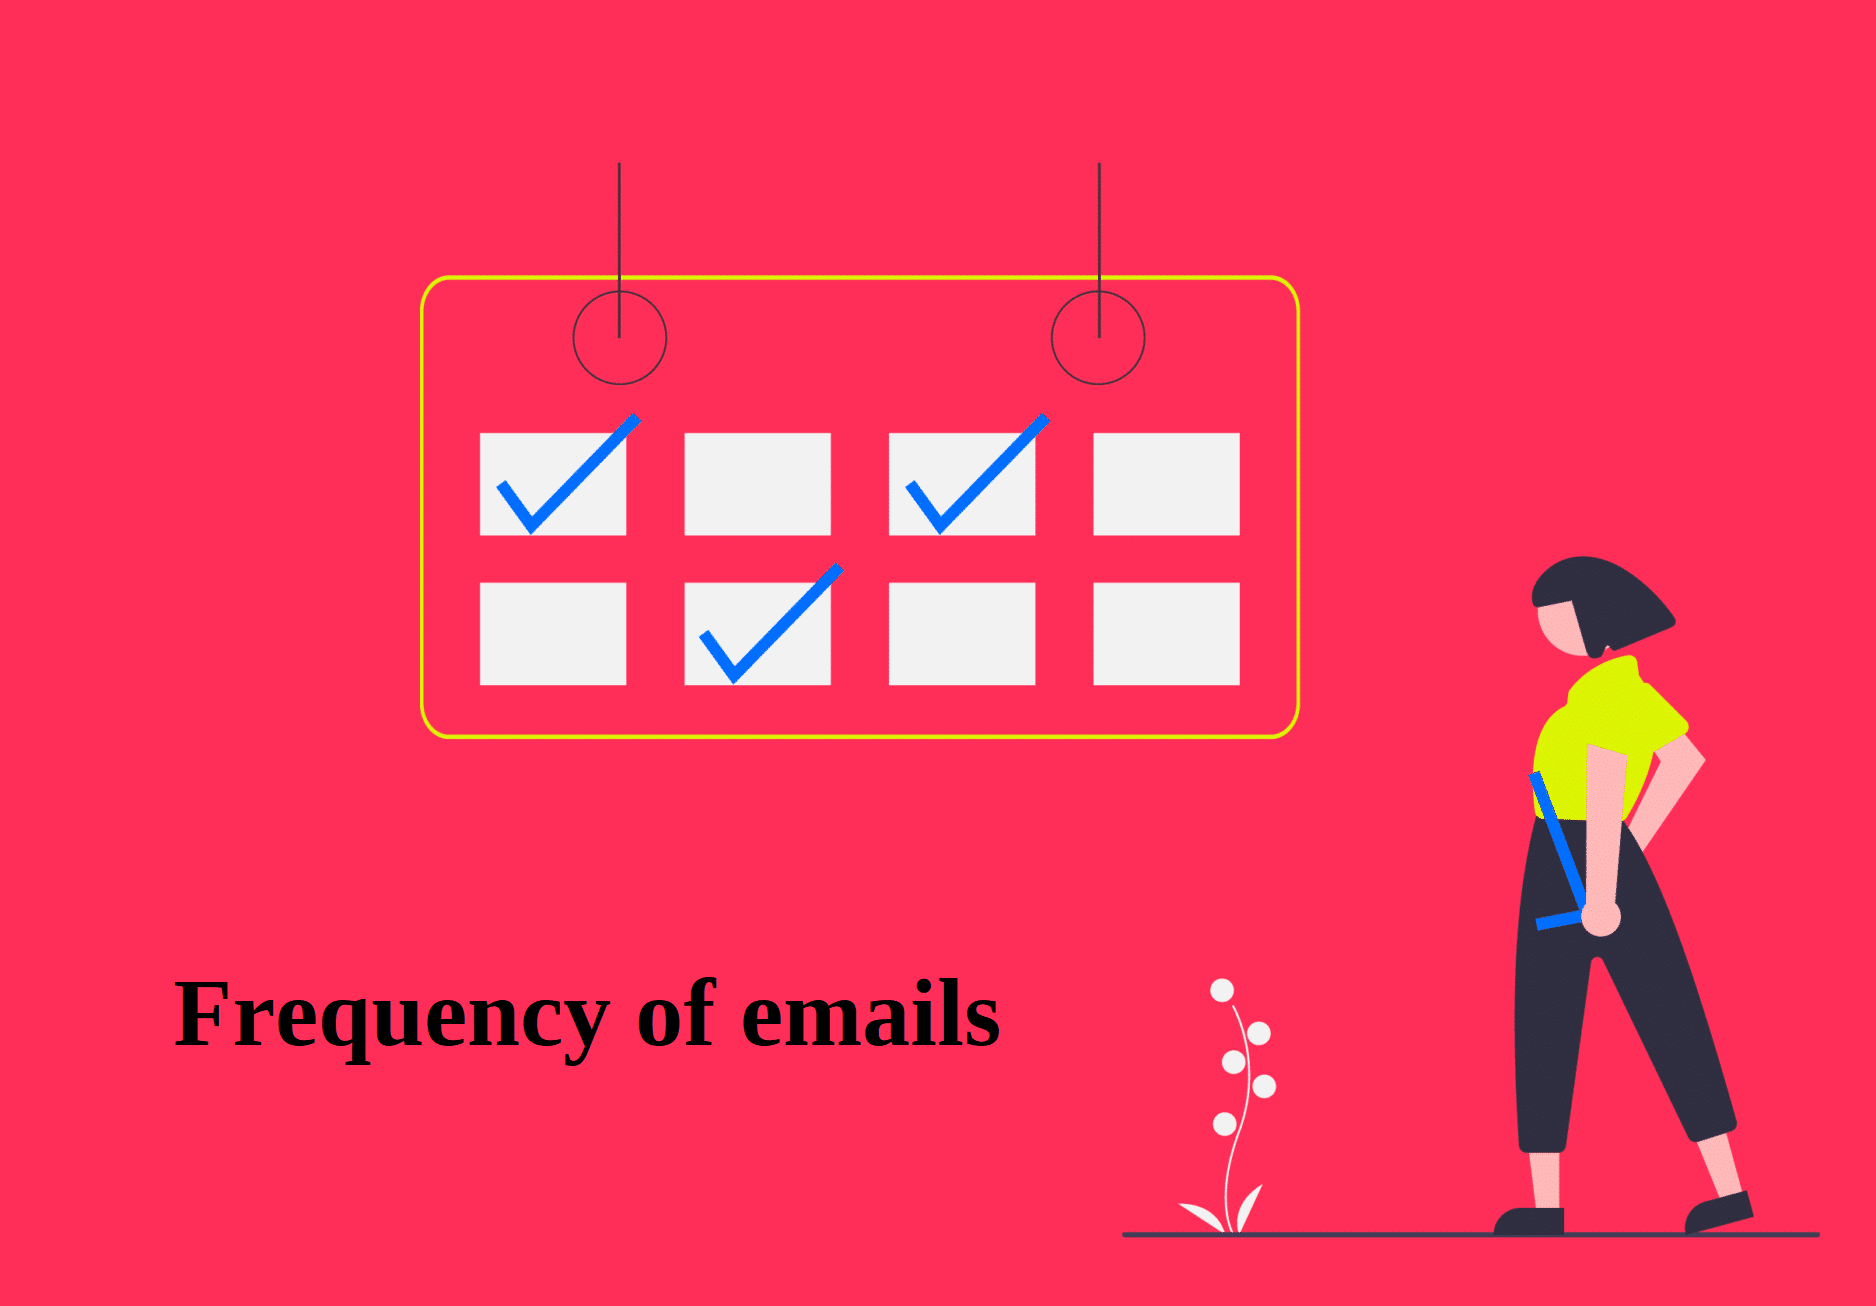 Frequency of emails